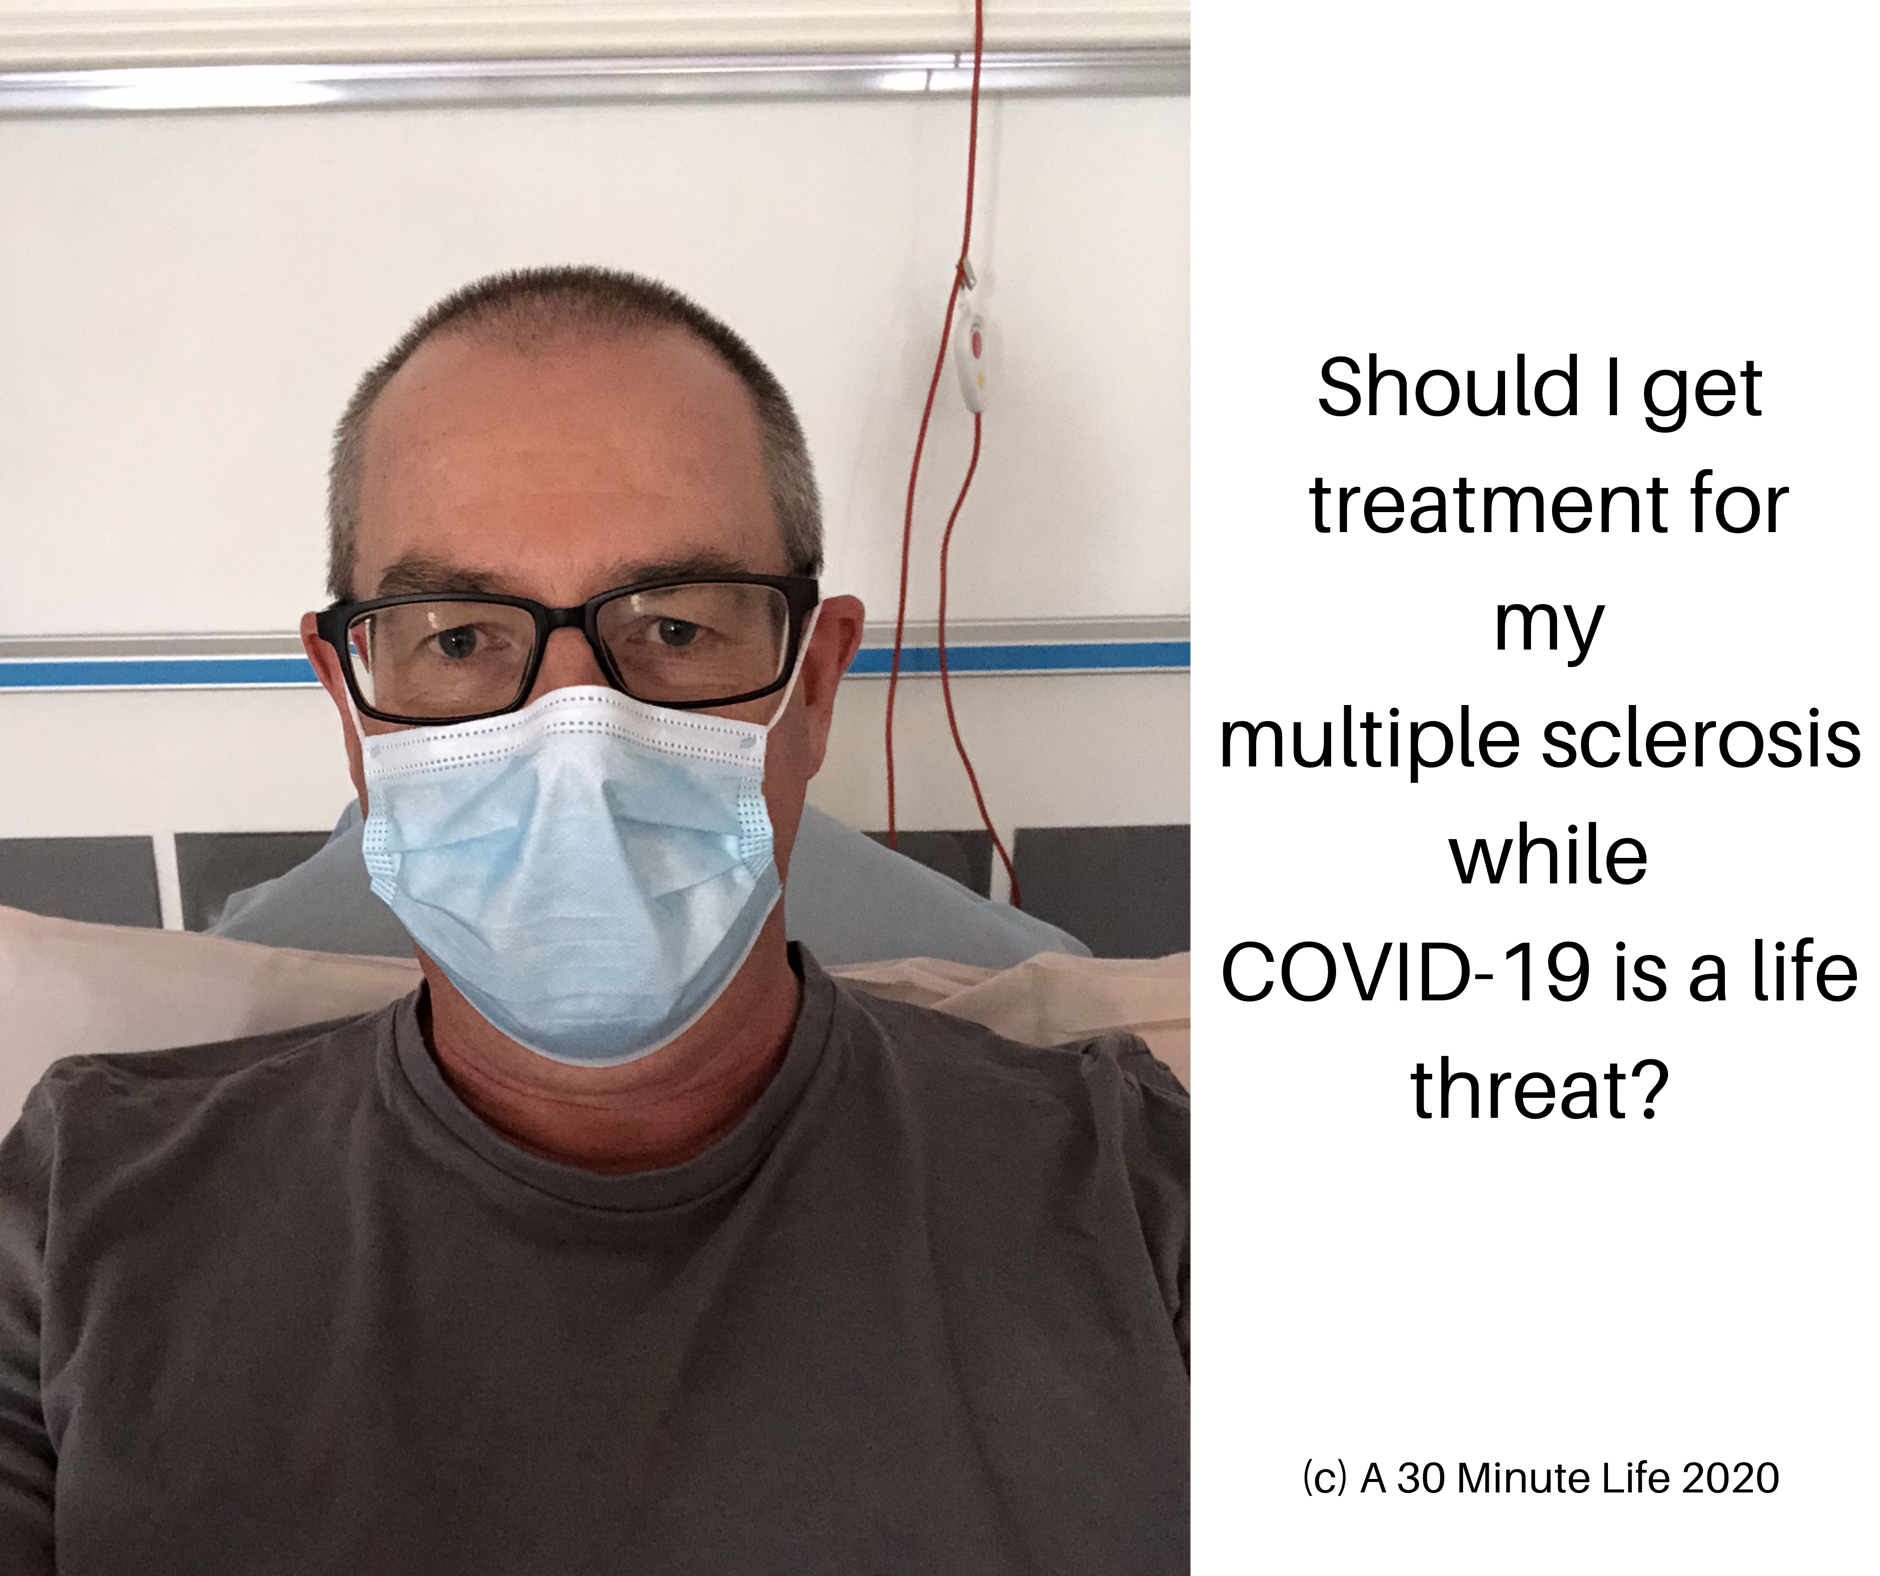 Should I treat MS while COVID-19 is active?